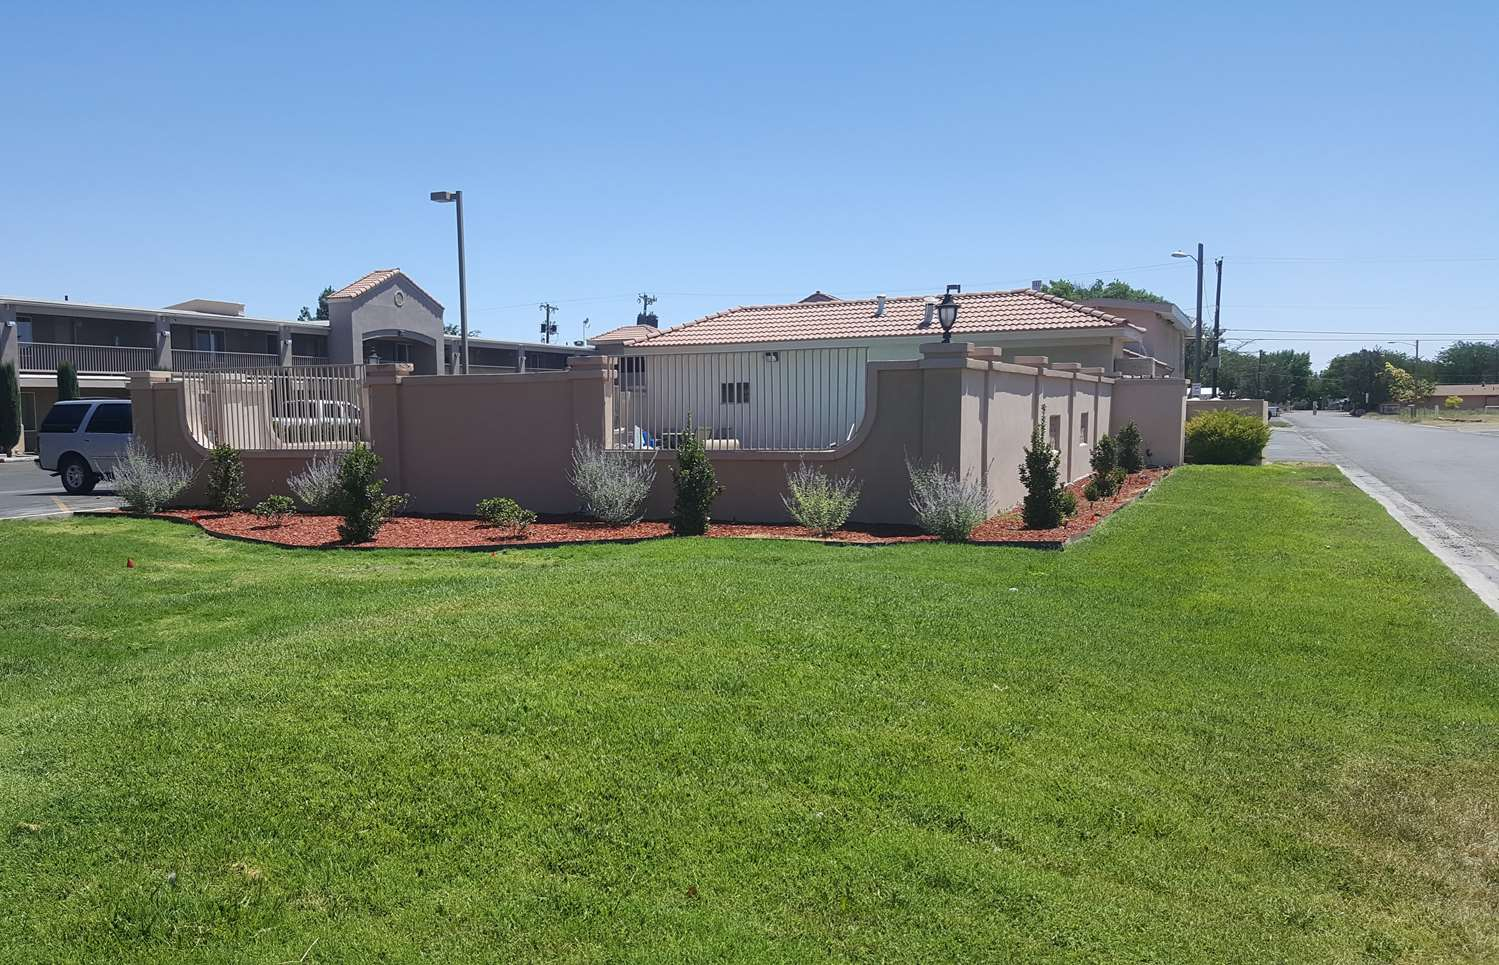 Cheap Hotels In Roswell